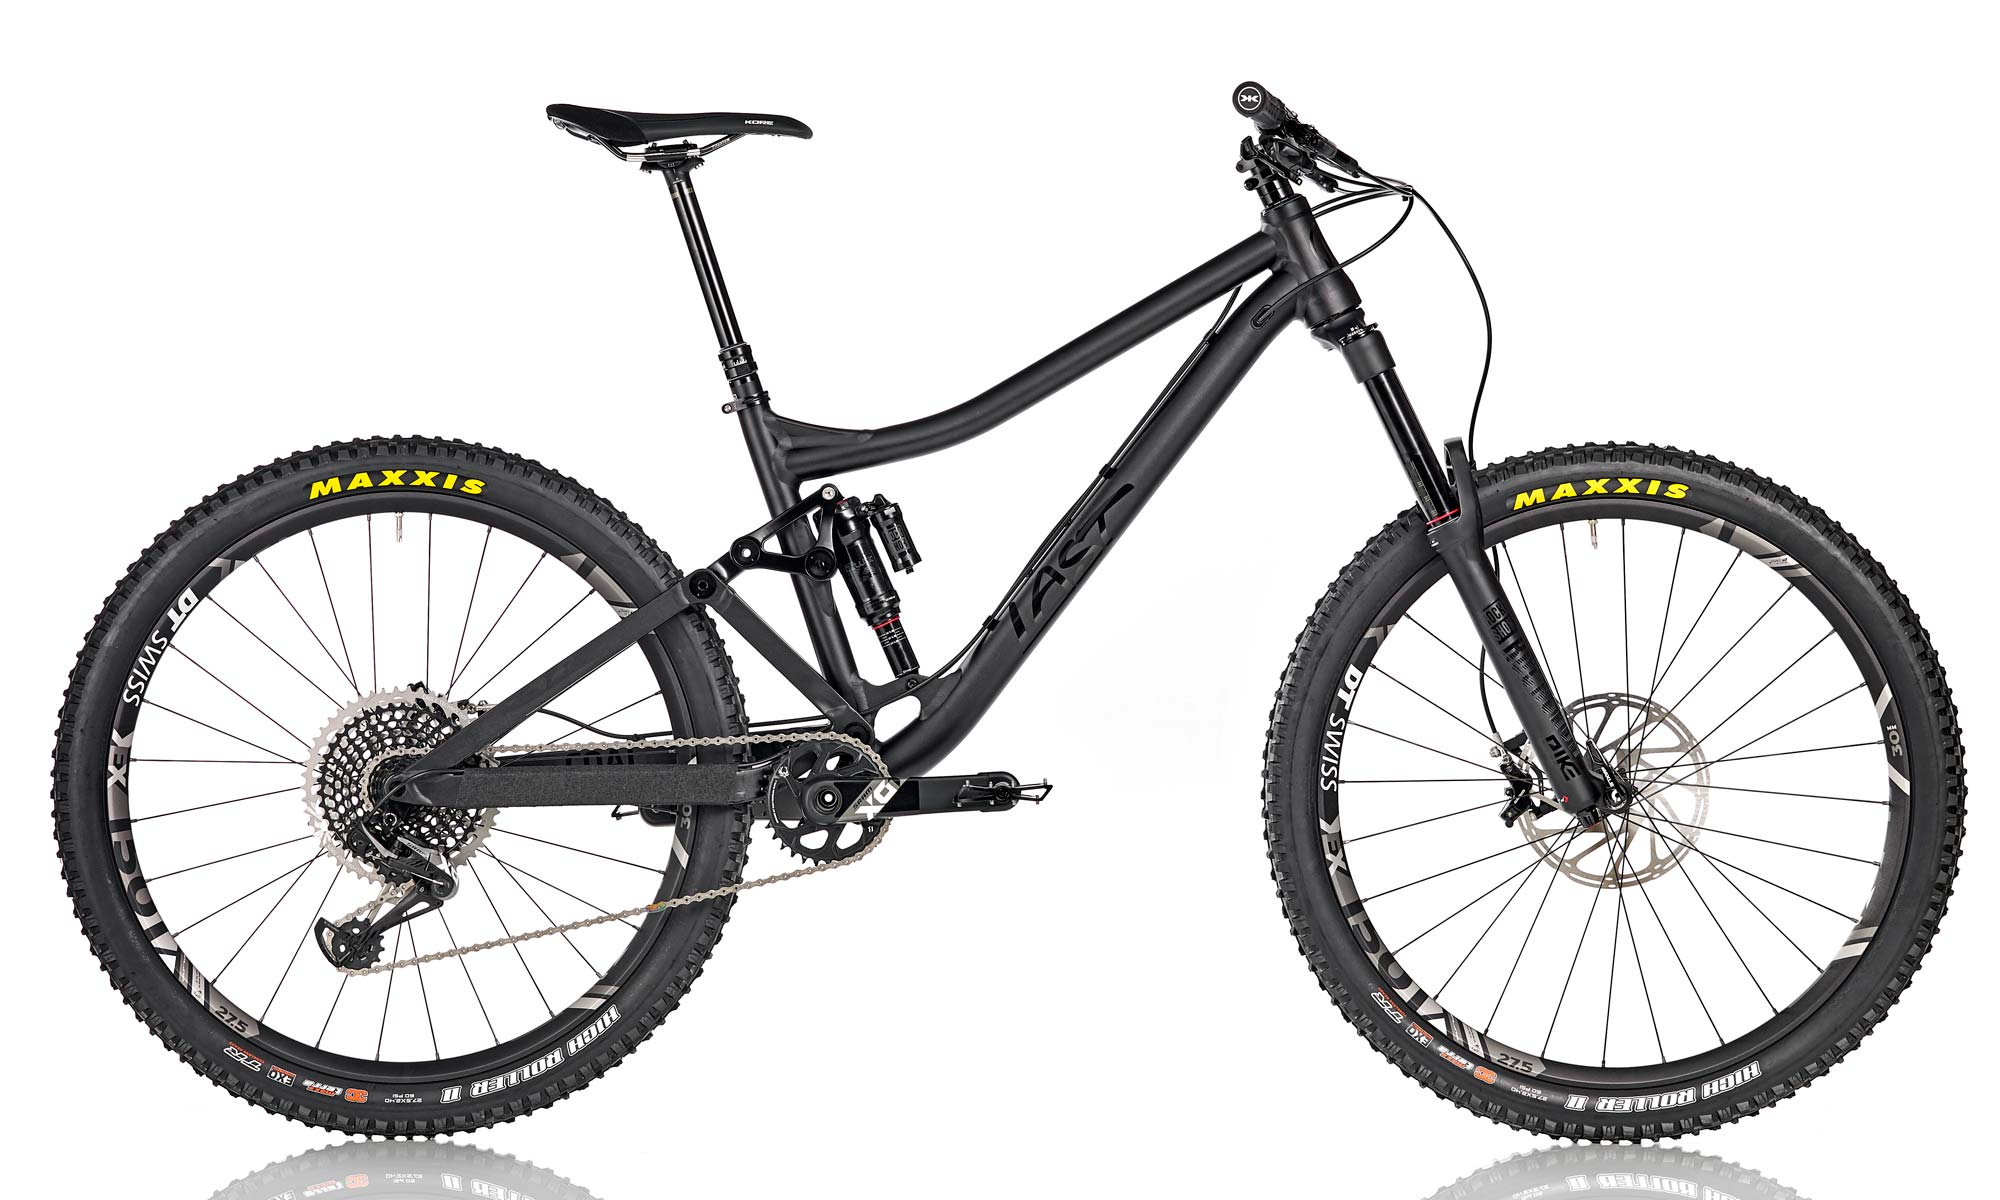 Cook up more aluminum enduro with new Last Coal mountain